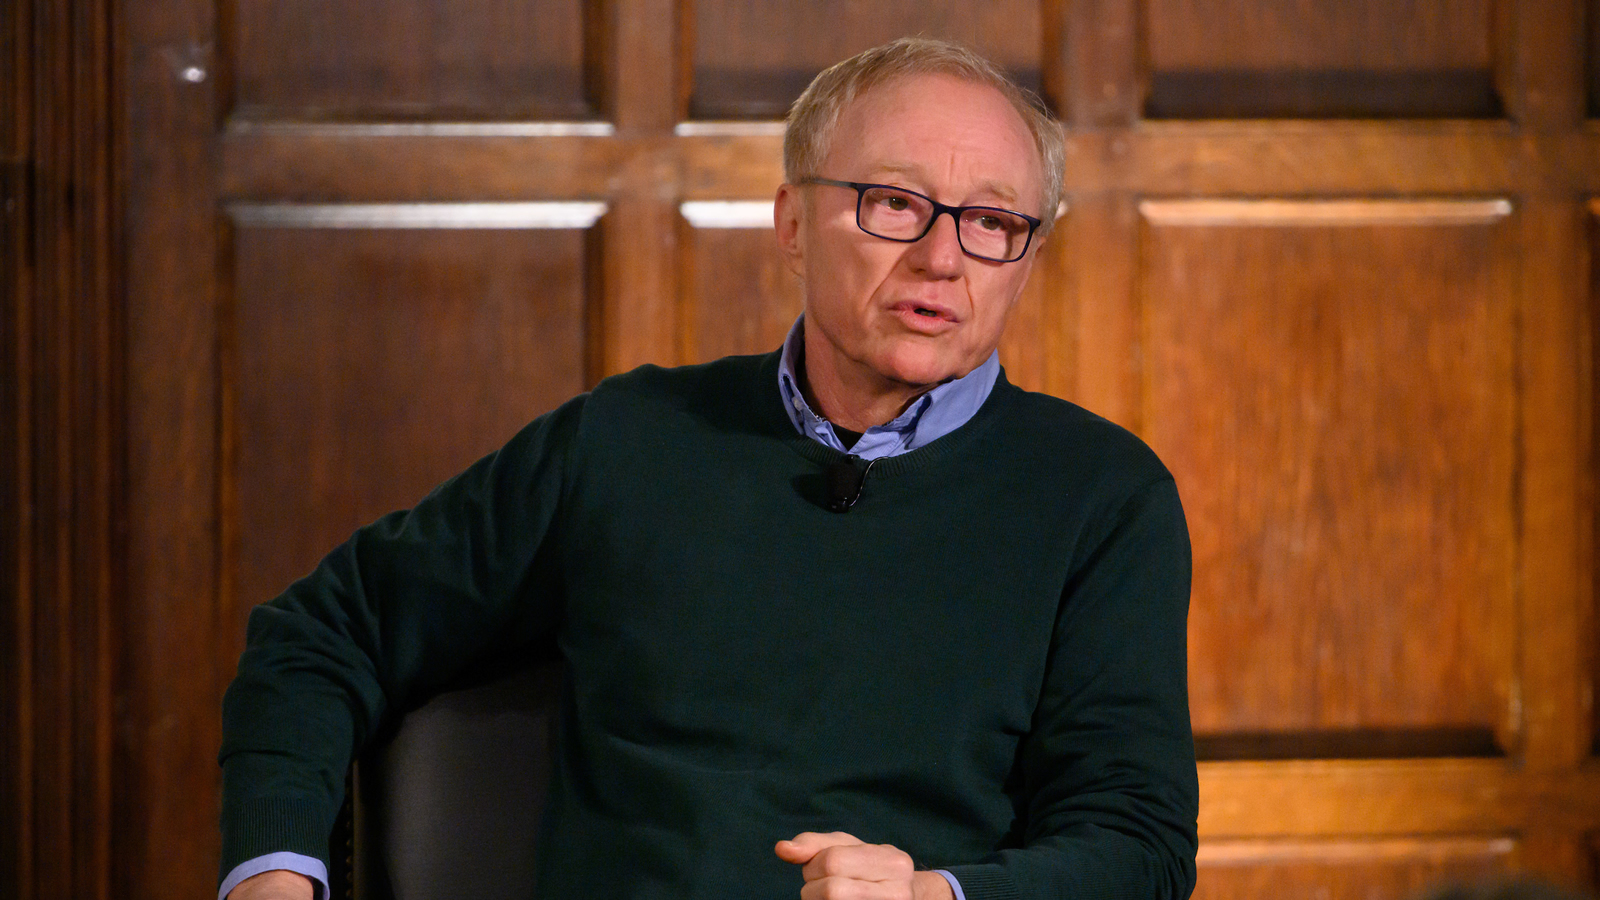 David Grossman discusses how writing allows him to understand different points of view.